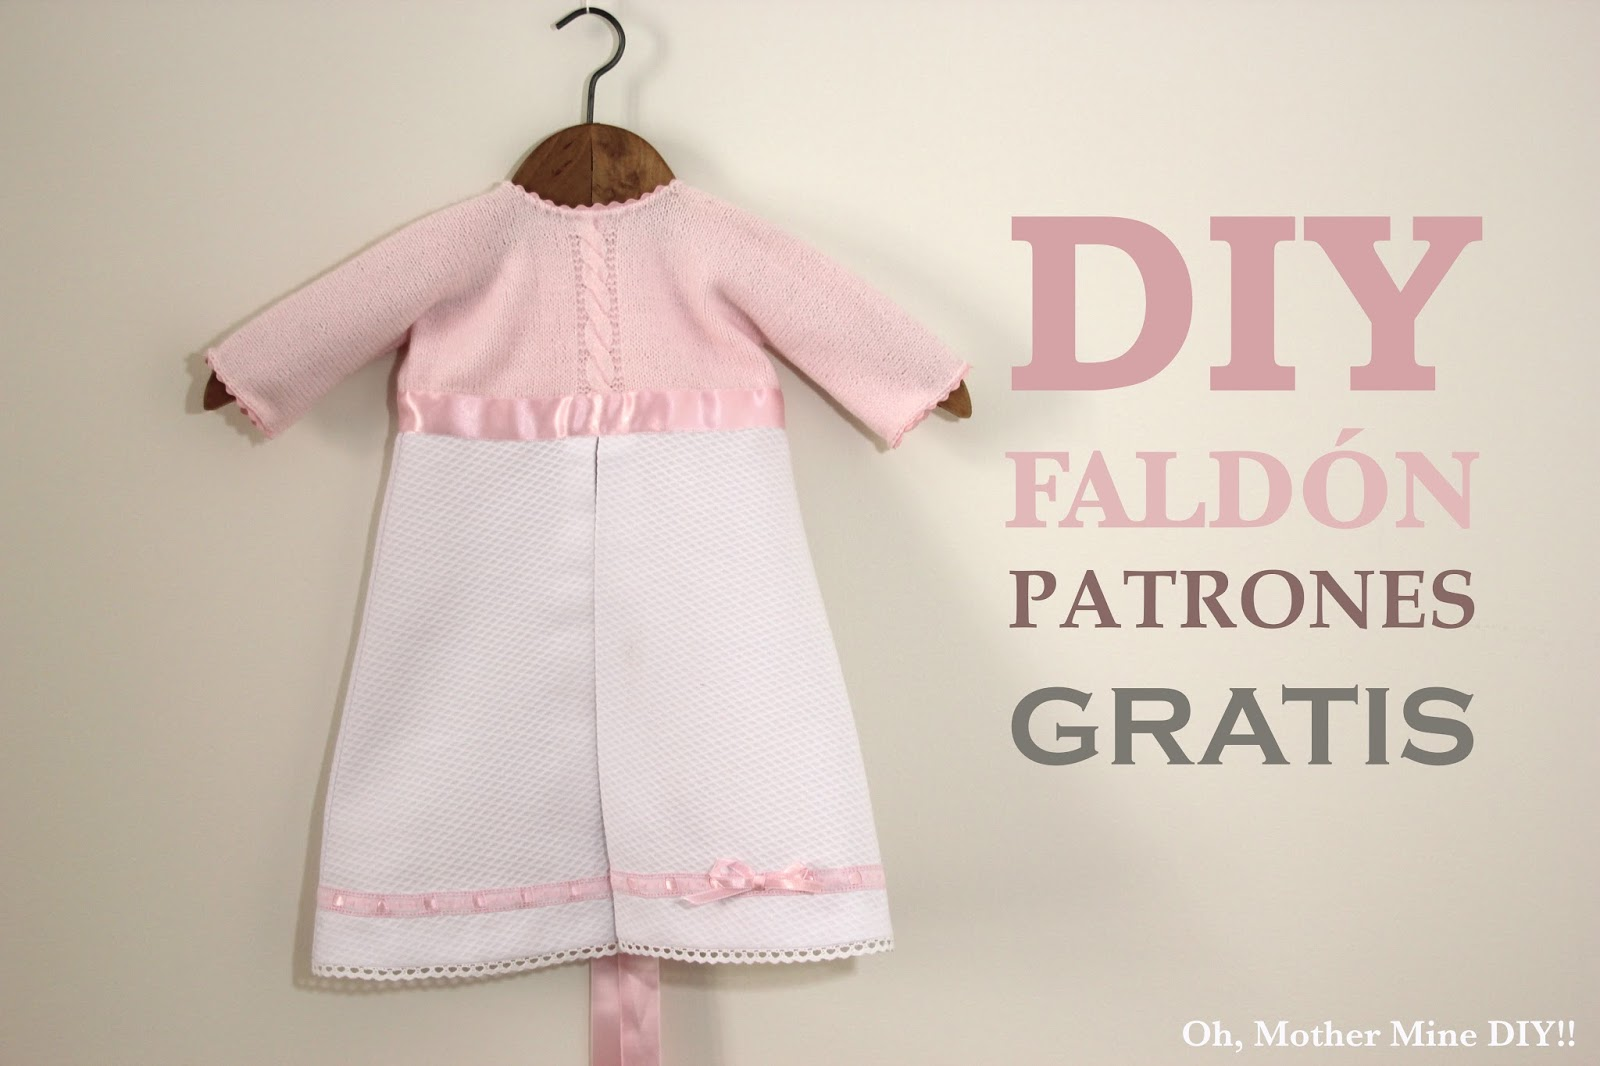 Faldón de bebé DIY (patrones gratis) - Handbox Craft Lovers ...